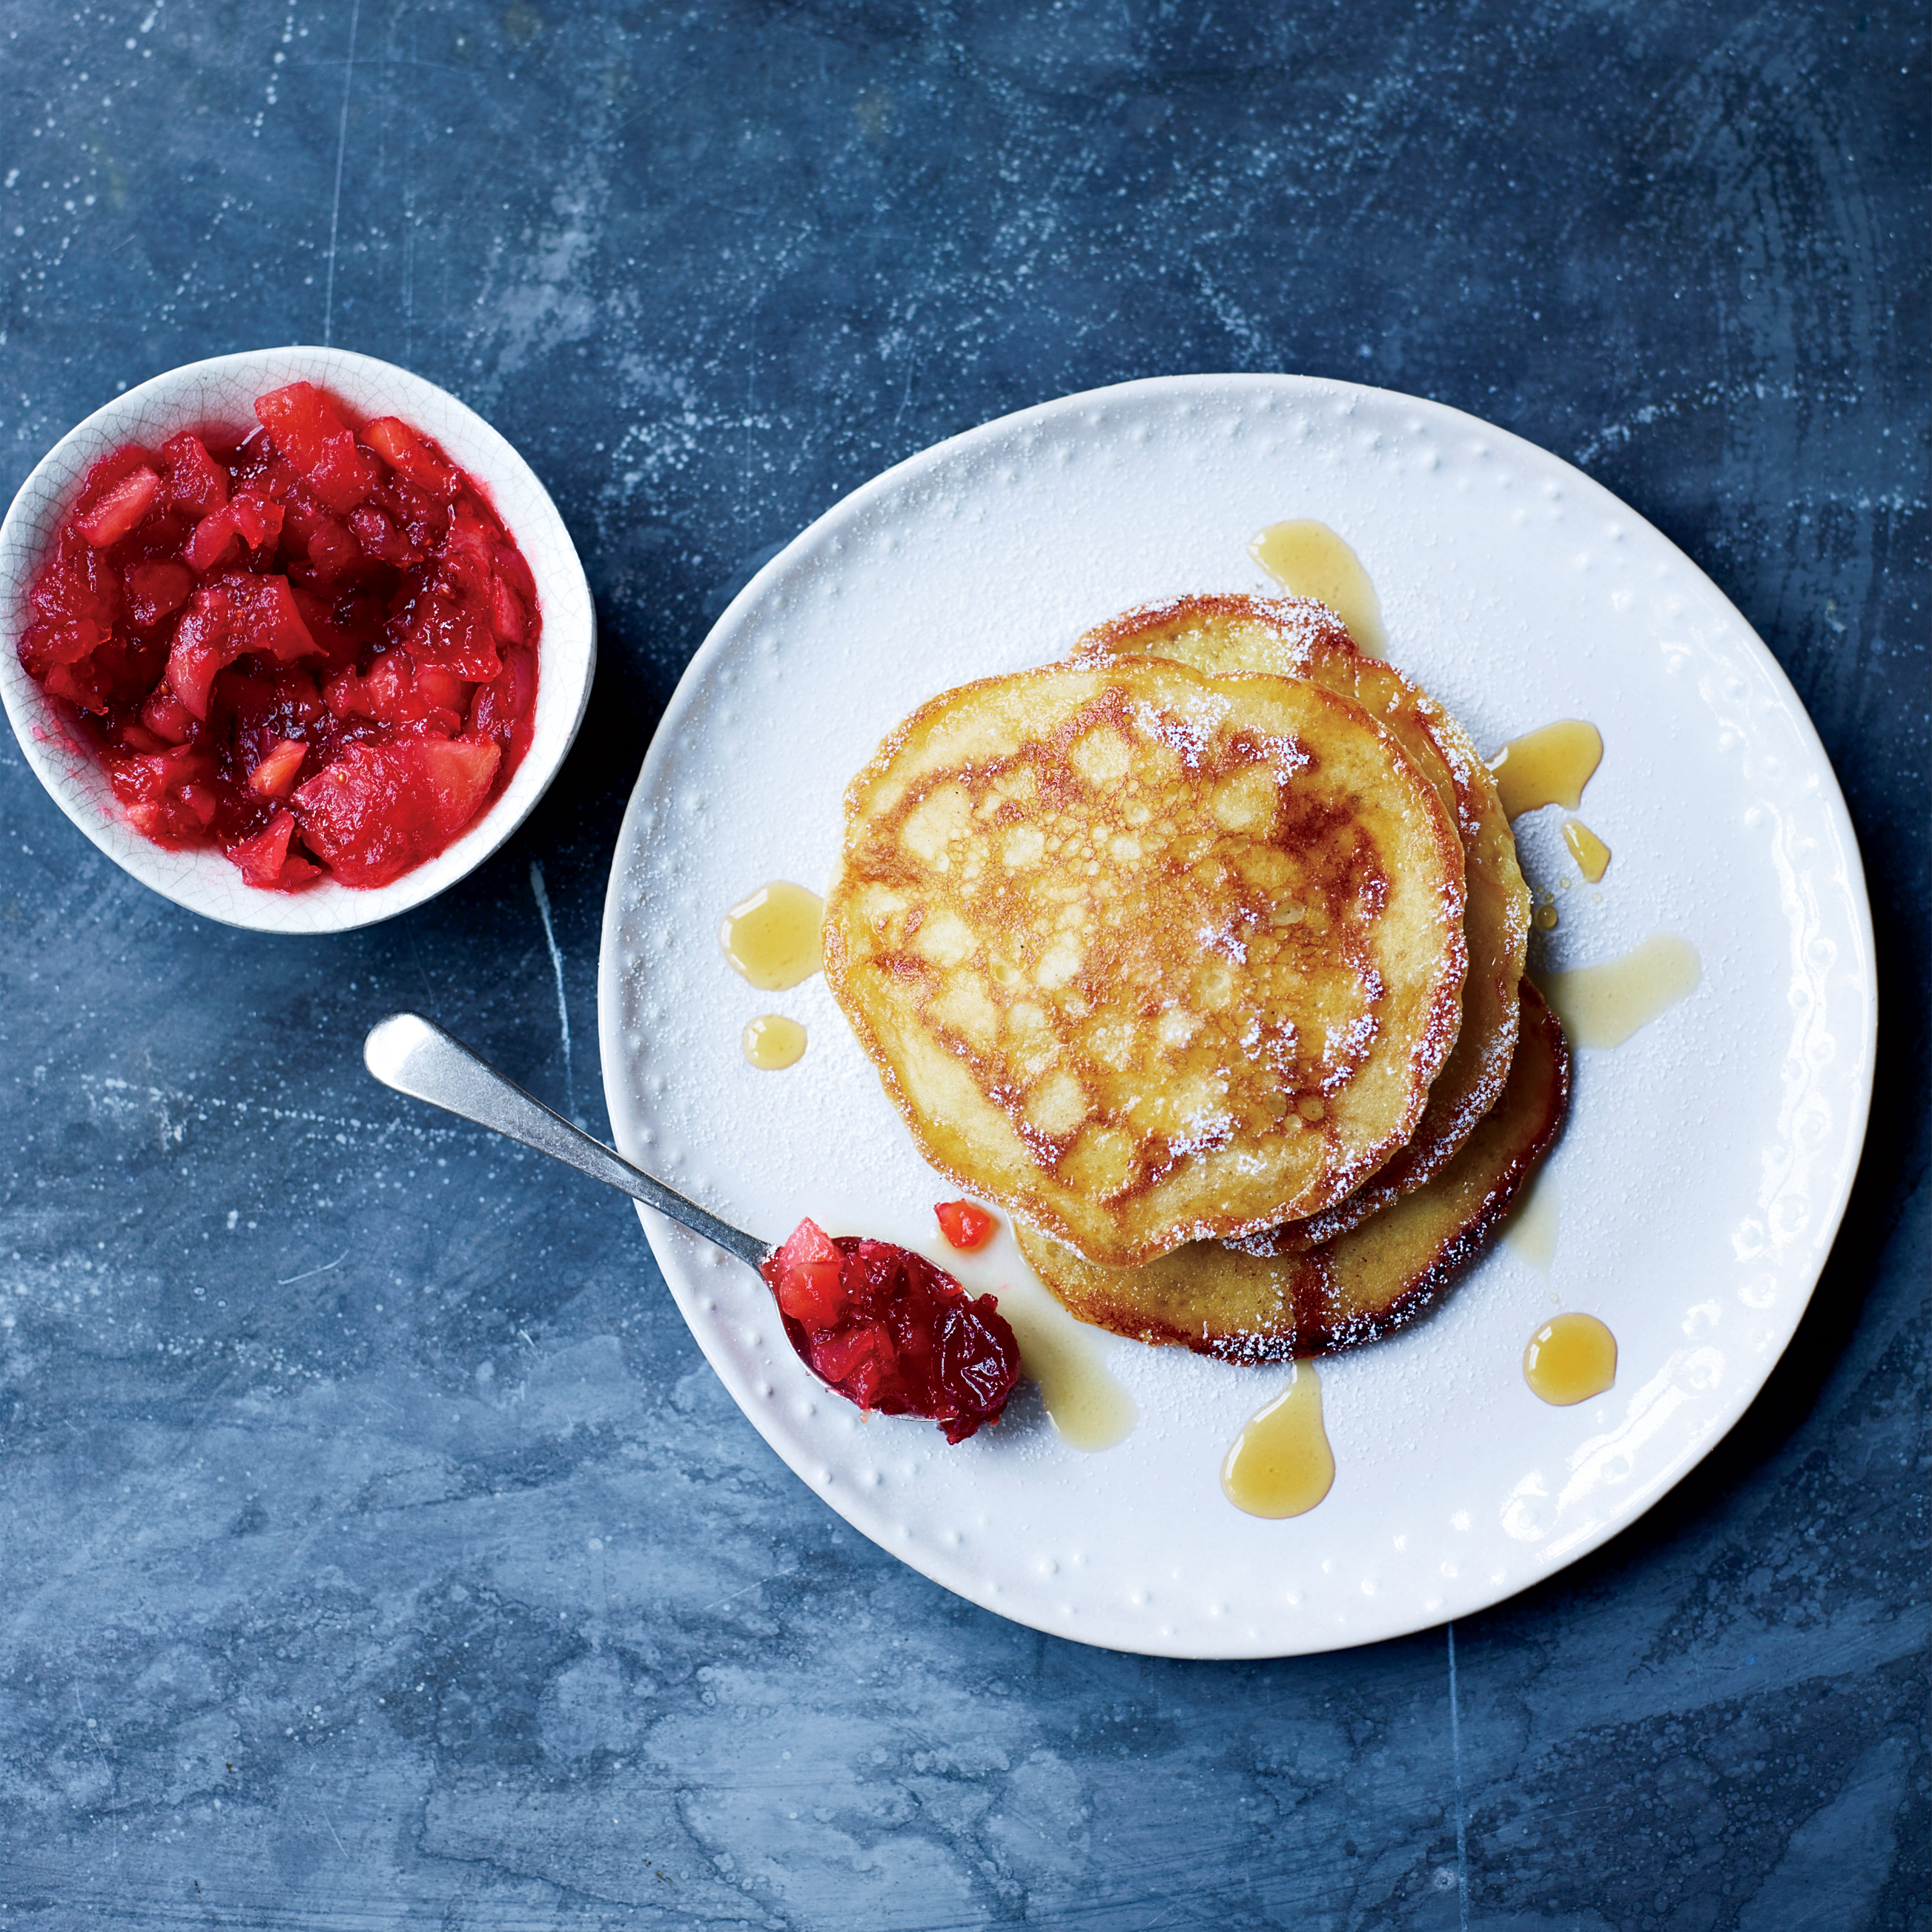 Pita And Chopped Vegetable Salad further Buttermilk Pancakes Quince And Cranberry  pote besides Oscars Red Carpet Dresses besides Mojito Water Recipe additionally Diy Lavender Lip Balm Printable. on oscar party eats and drinks